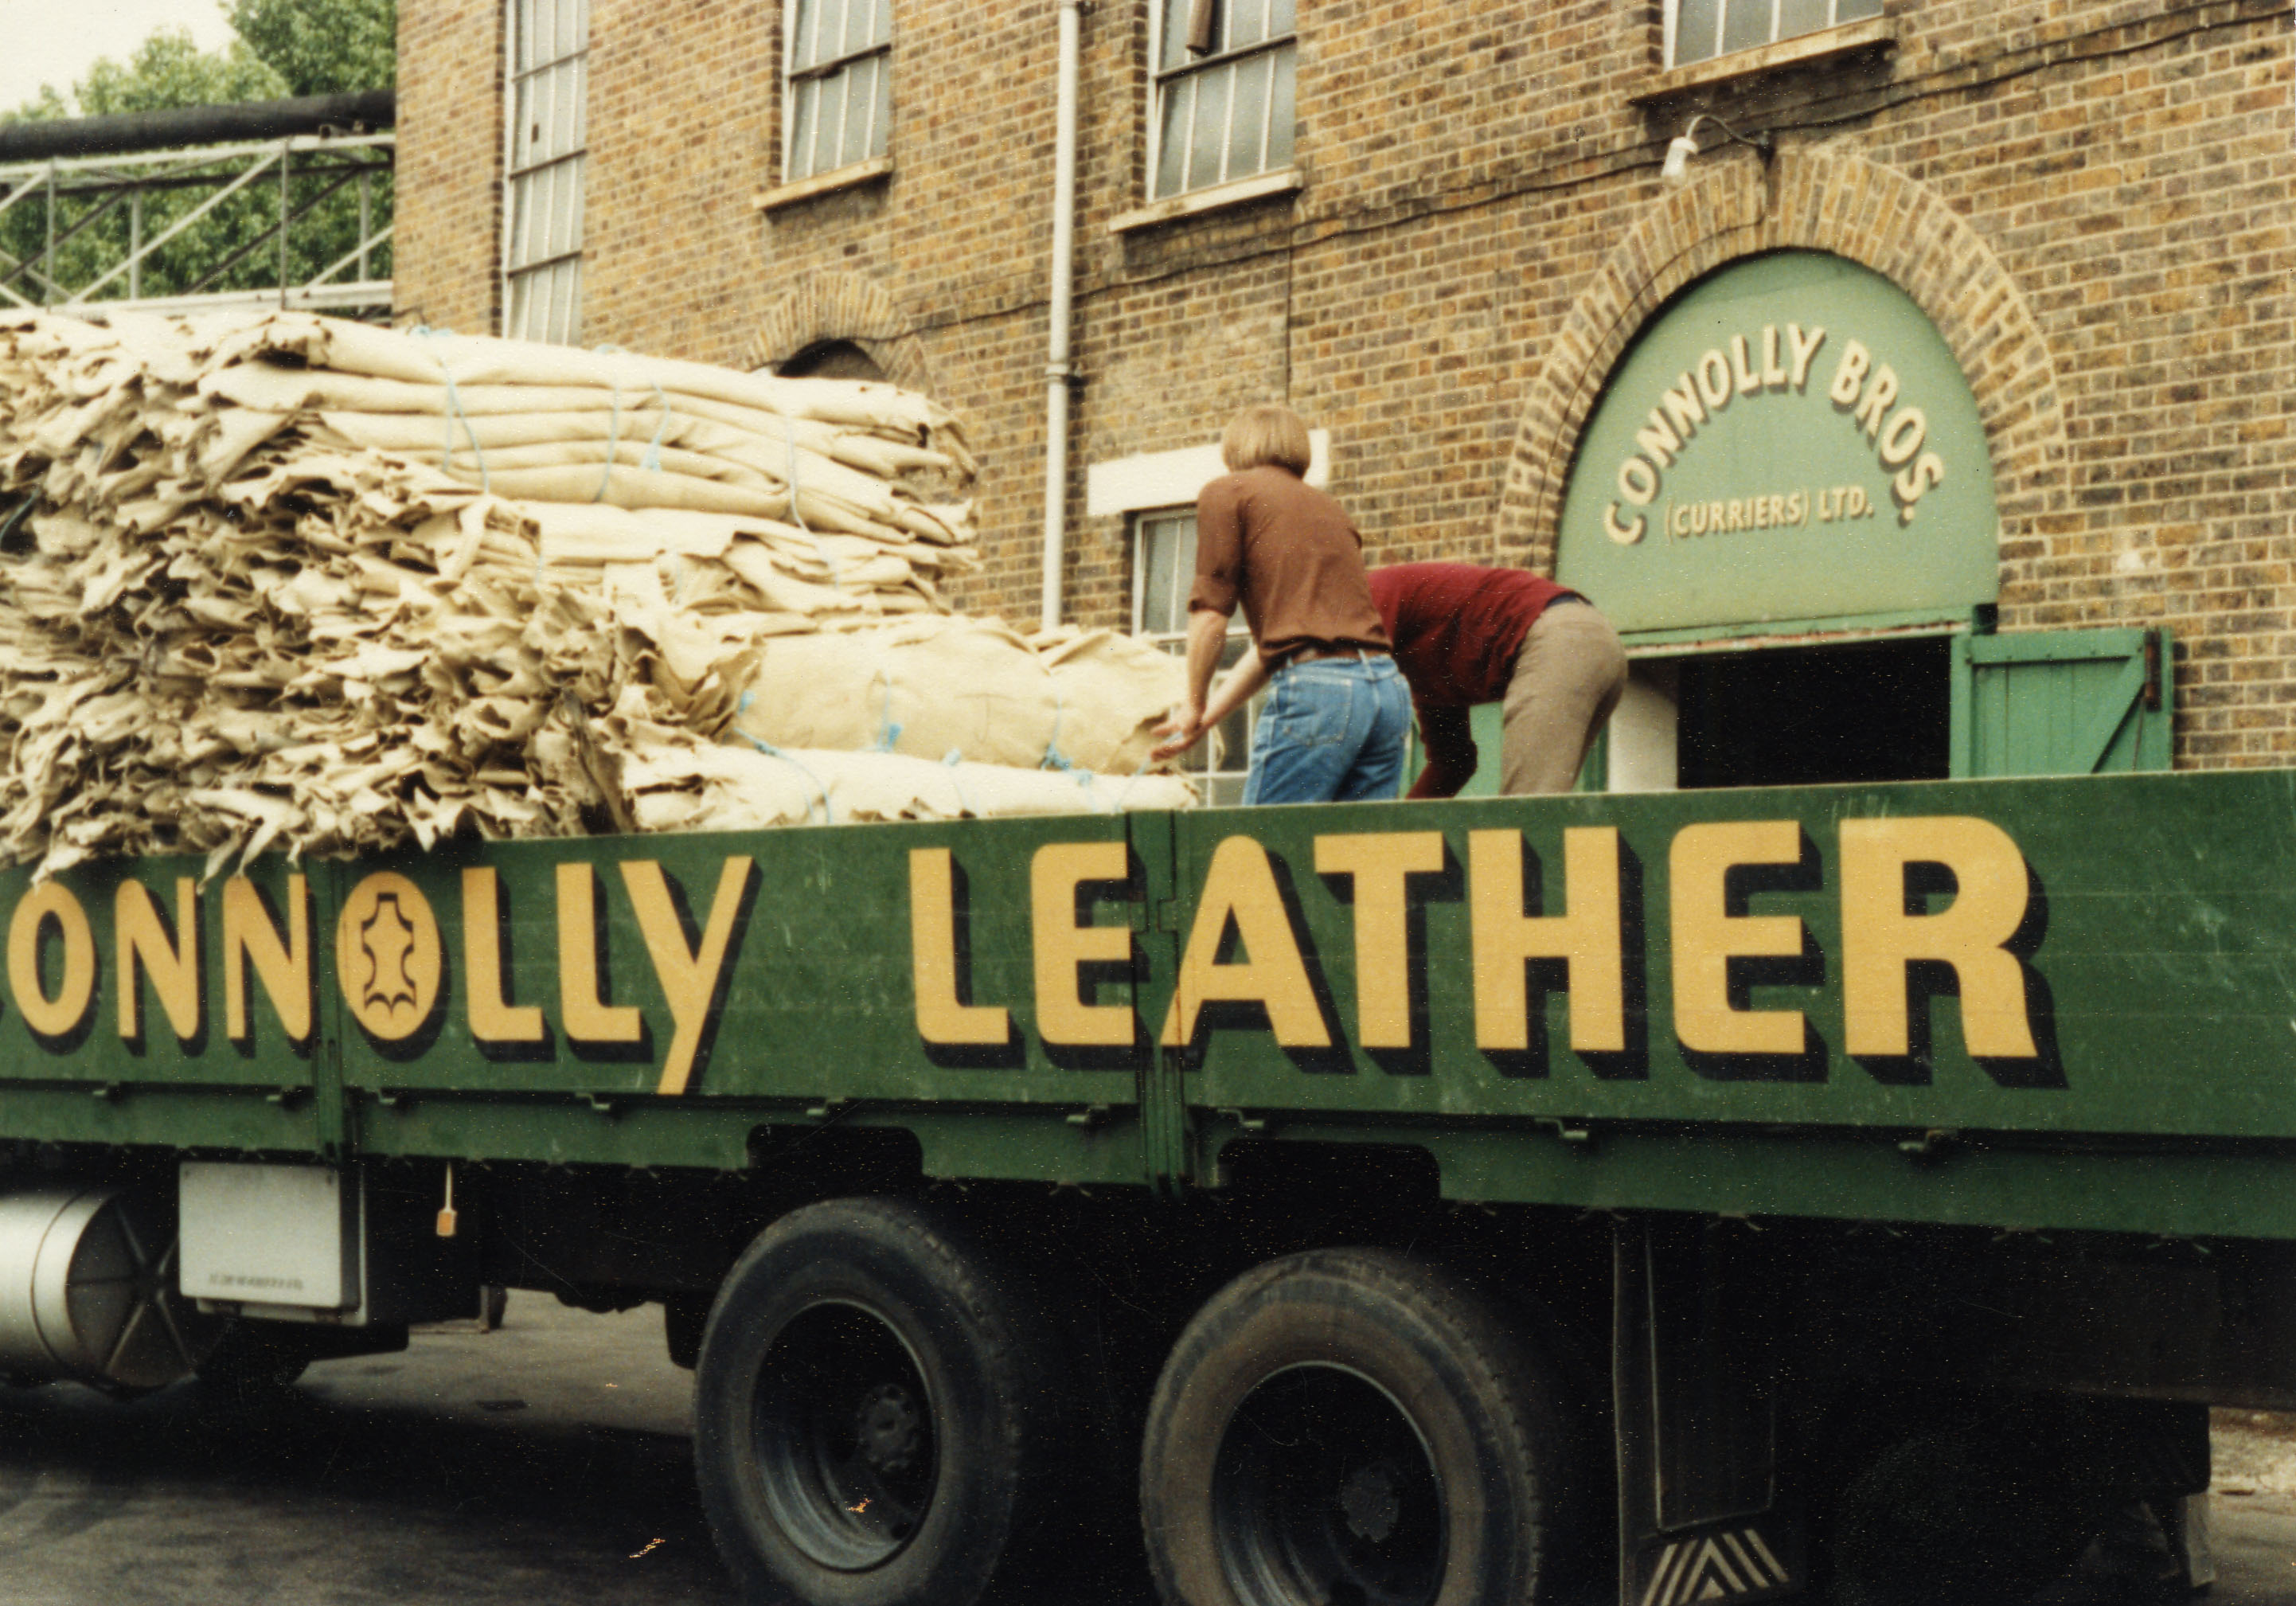 Connolly's Leather Works